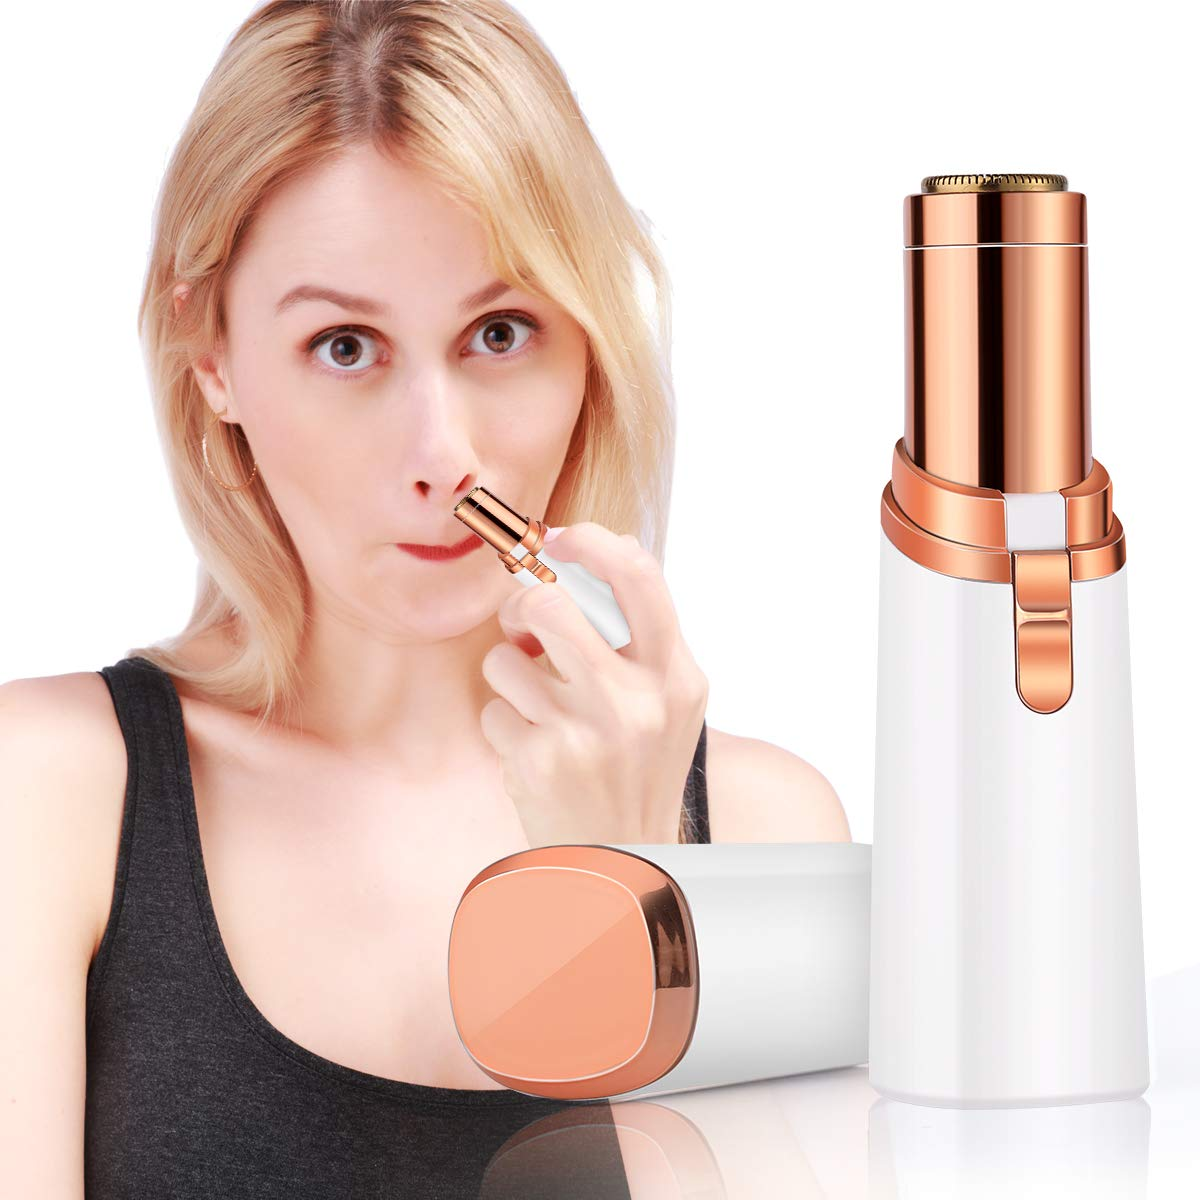 Veru ETERNITY Facial Hair Removal for Women, Painless Hair Remover with LED Light-for Chin Hair, Upper Lip Moustaches, Peach Fuzz, and Cheeks